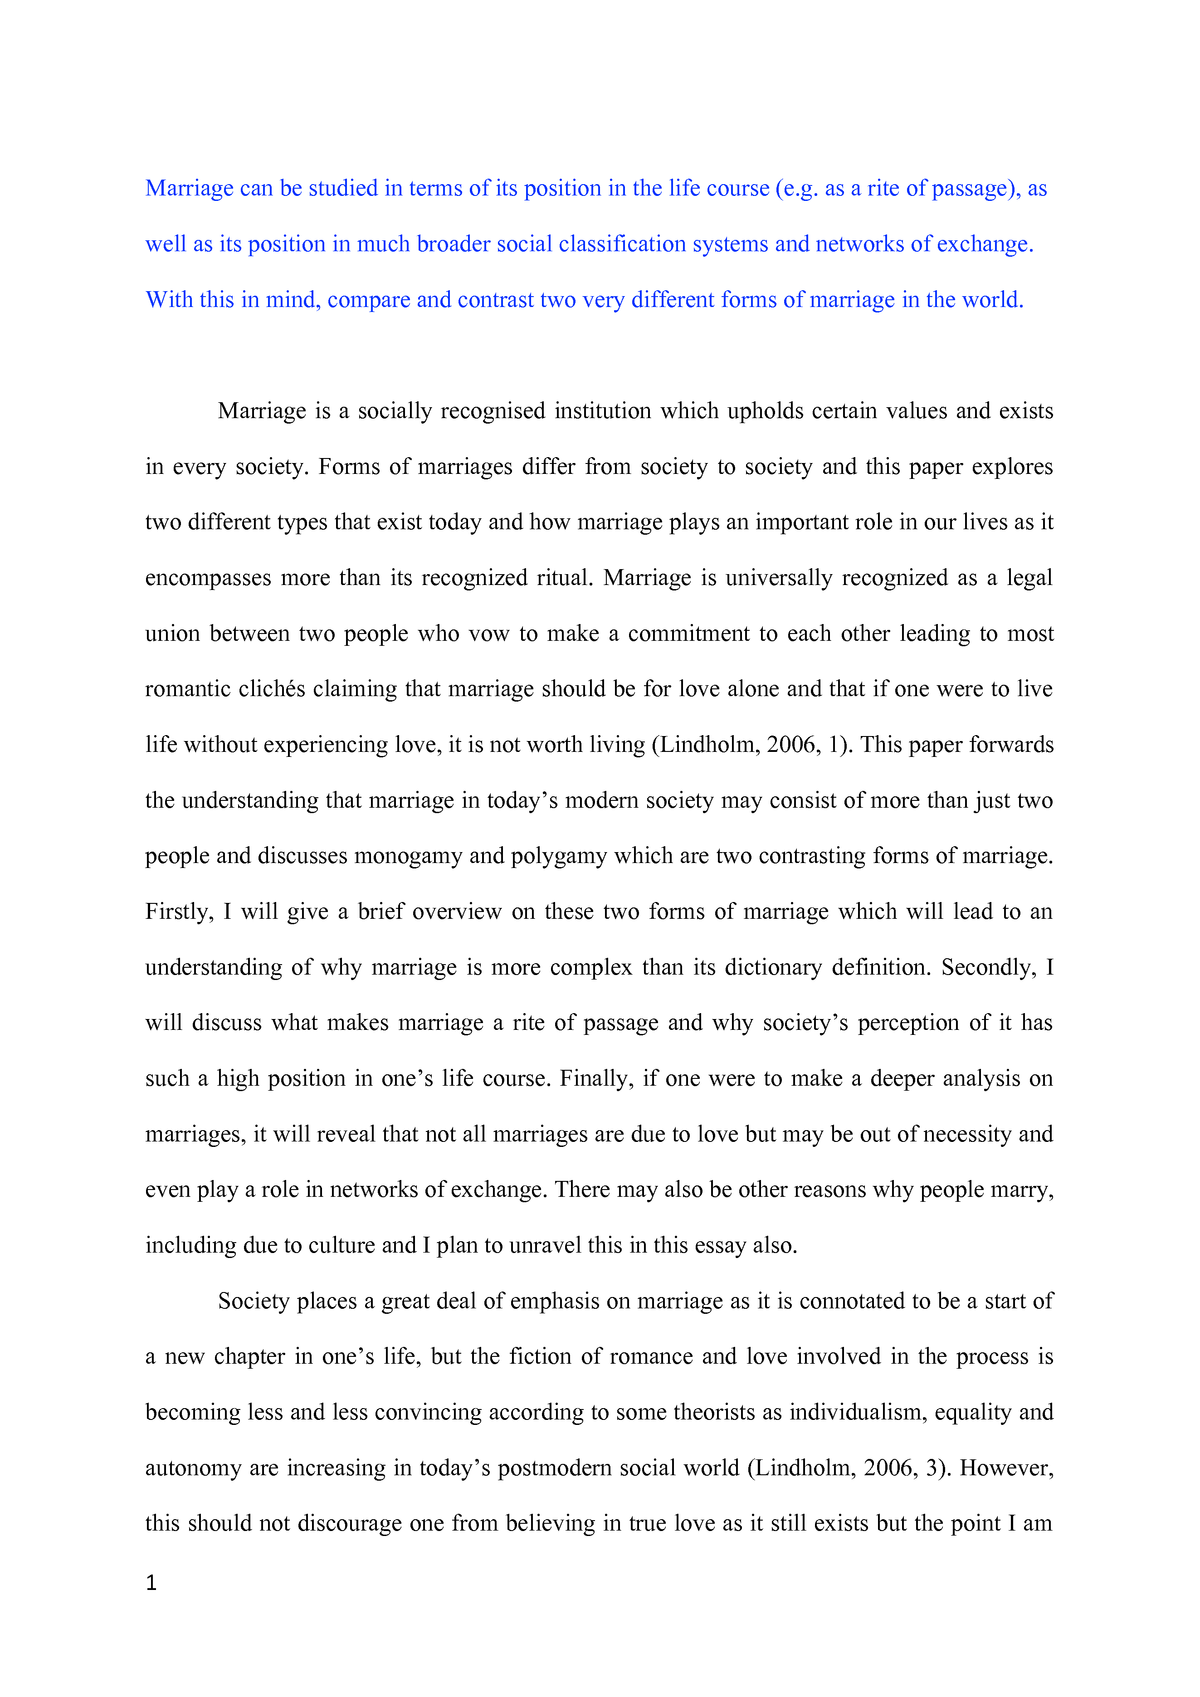 is marriage still relevant in todays society essay